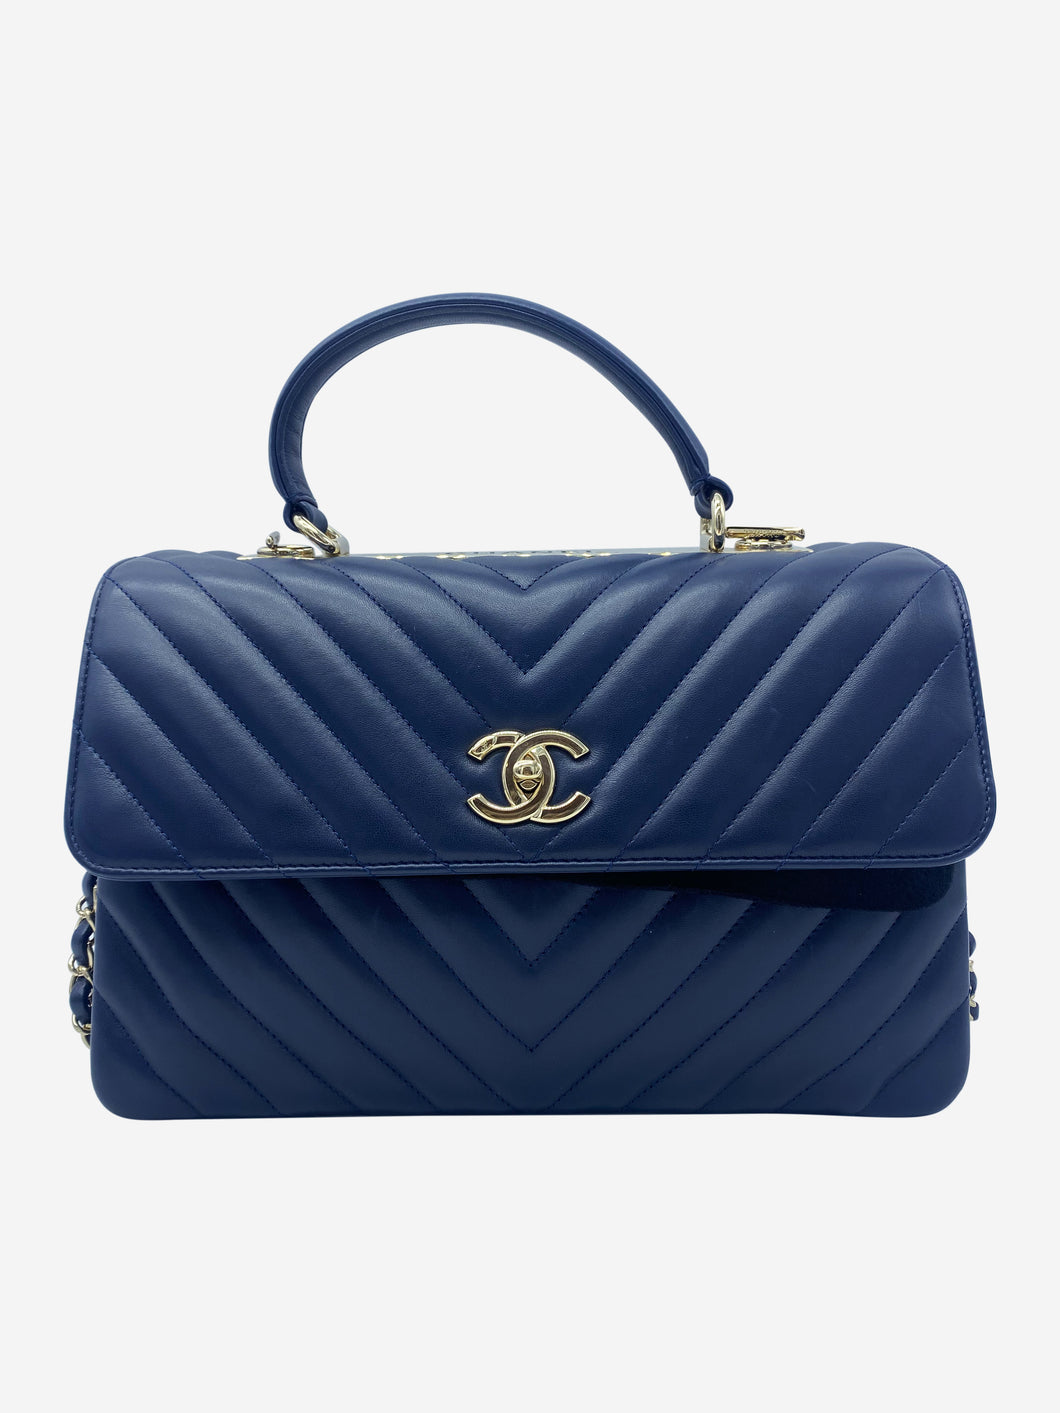 Navy Coco chevron Trendy top handle flap bag